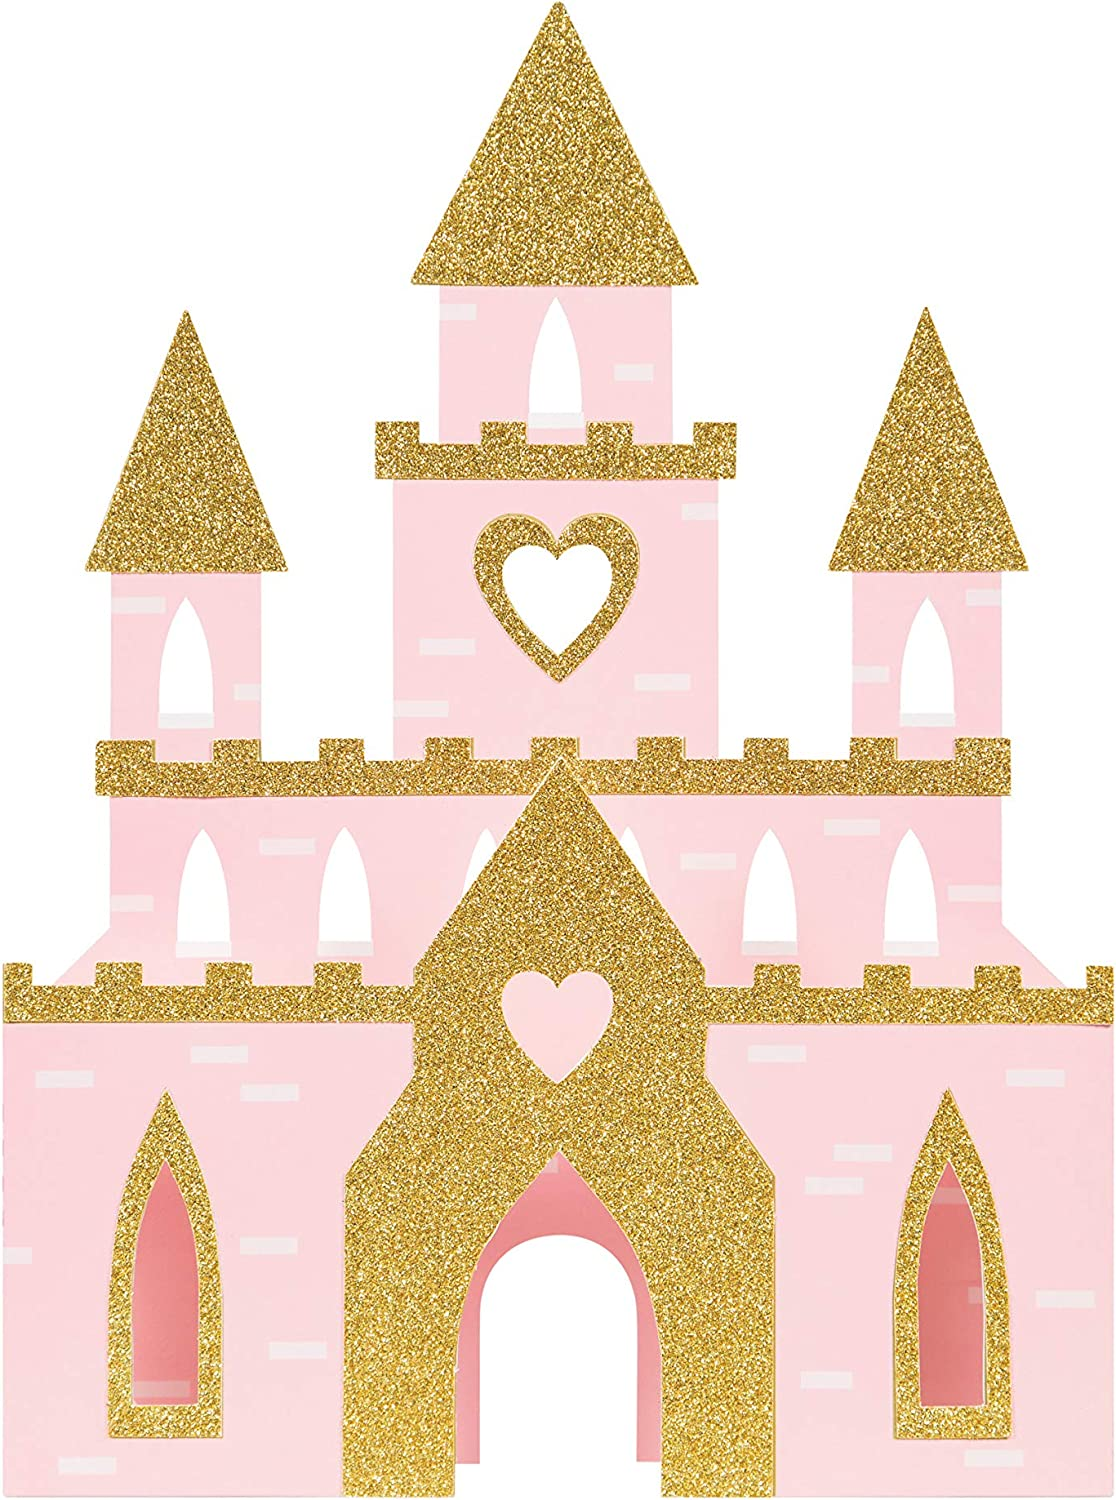 Princess Party Decor by Creative Converting